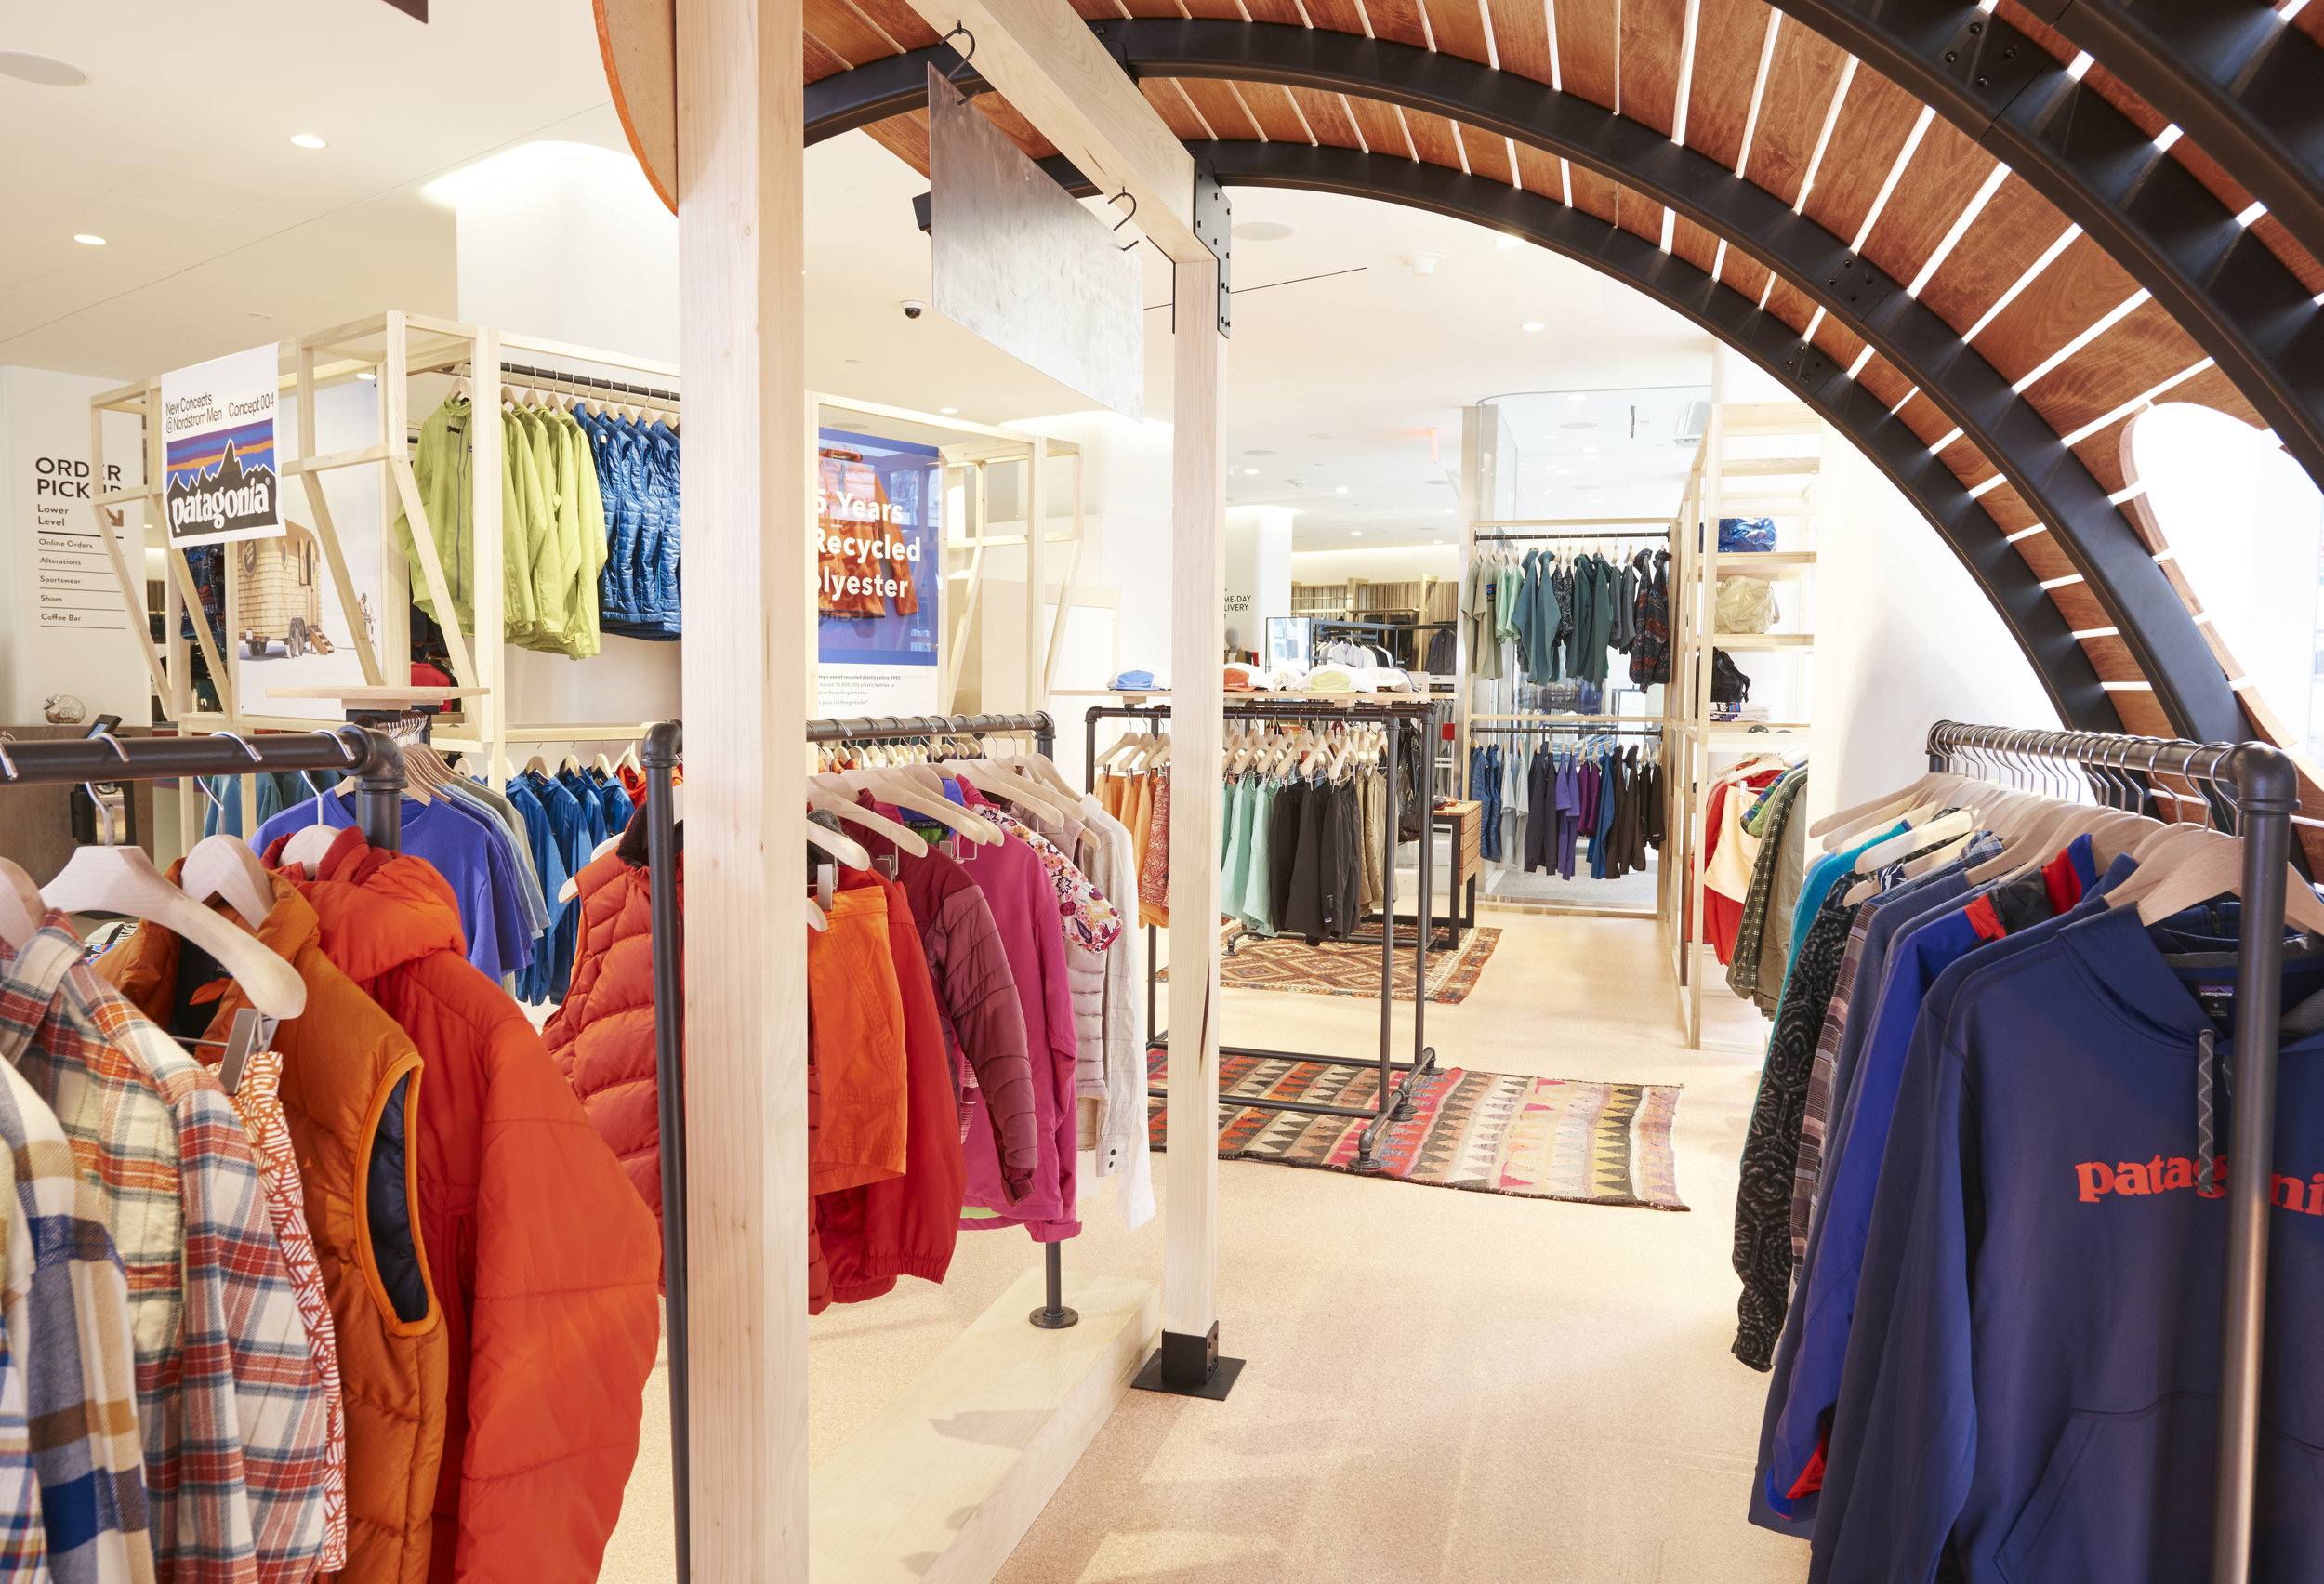 NORDSTROM'S CONCEPT 004: PATAGONIA PHOTO: NORDSTROM